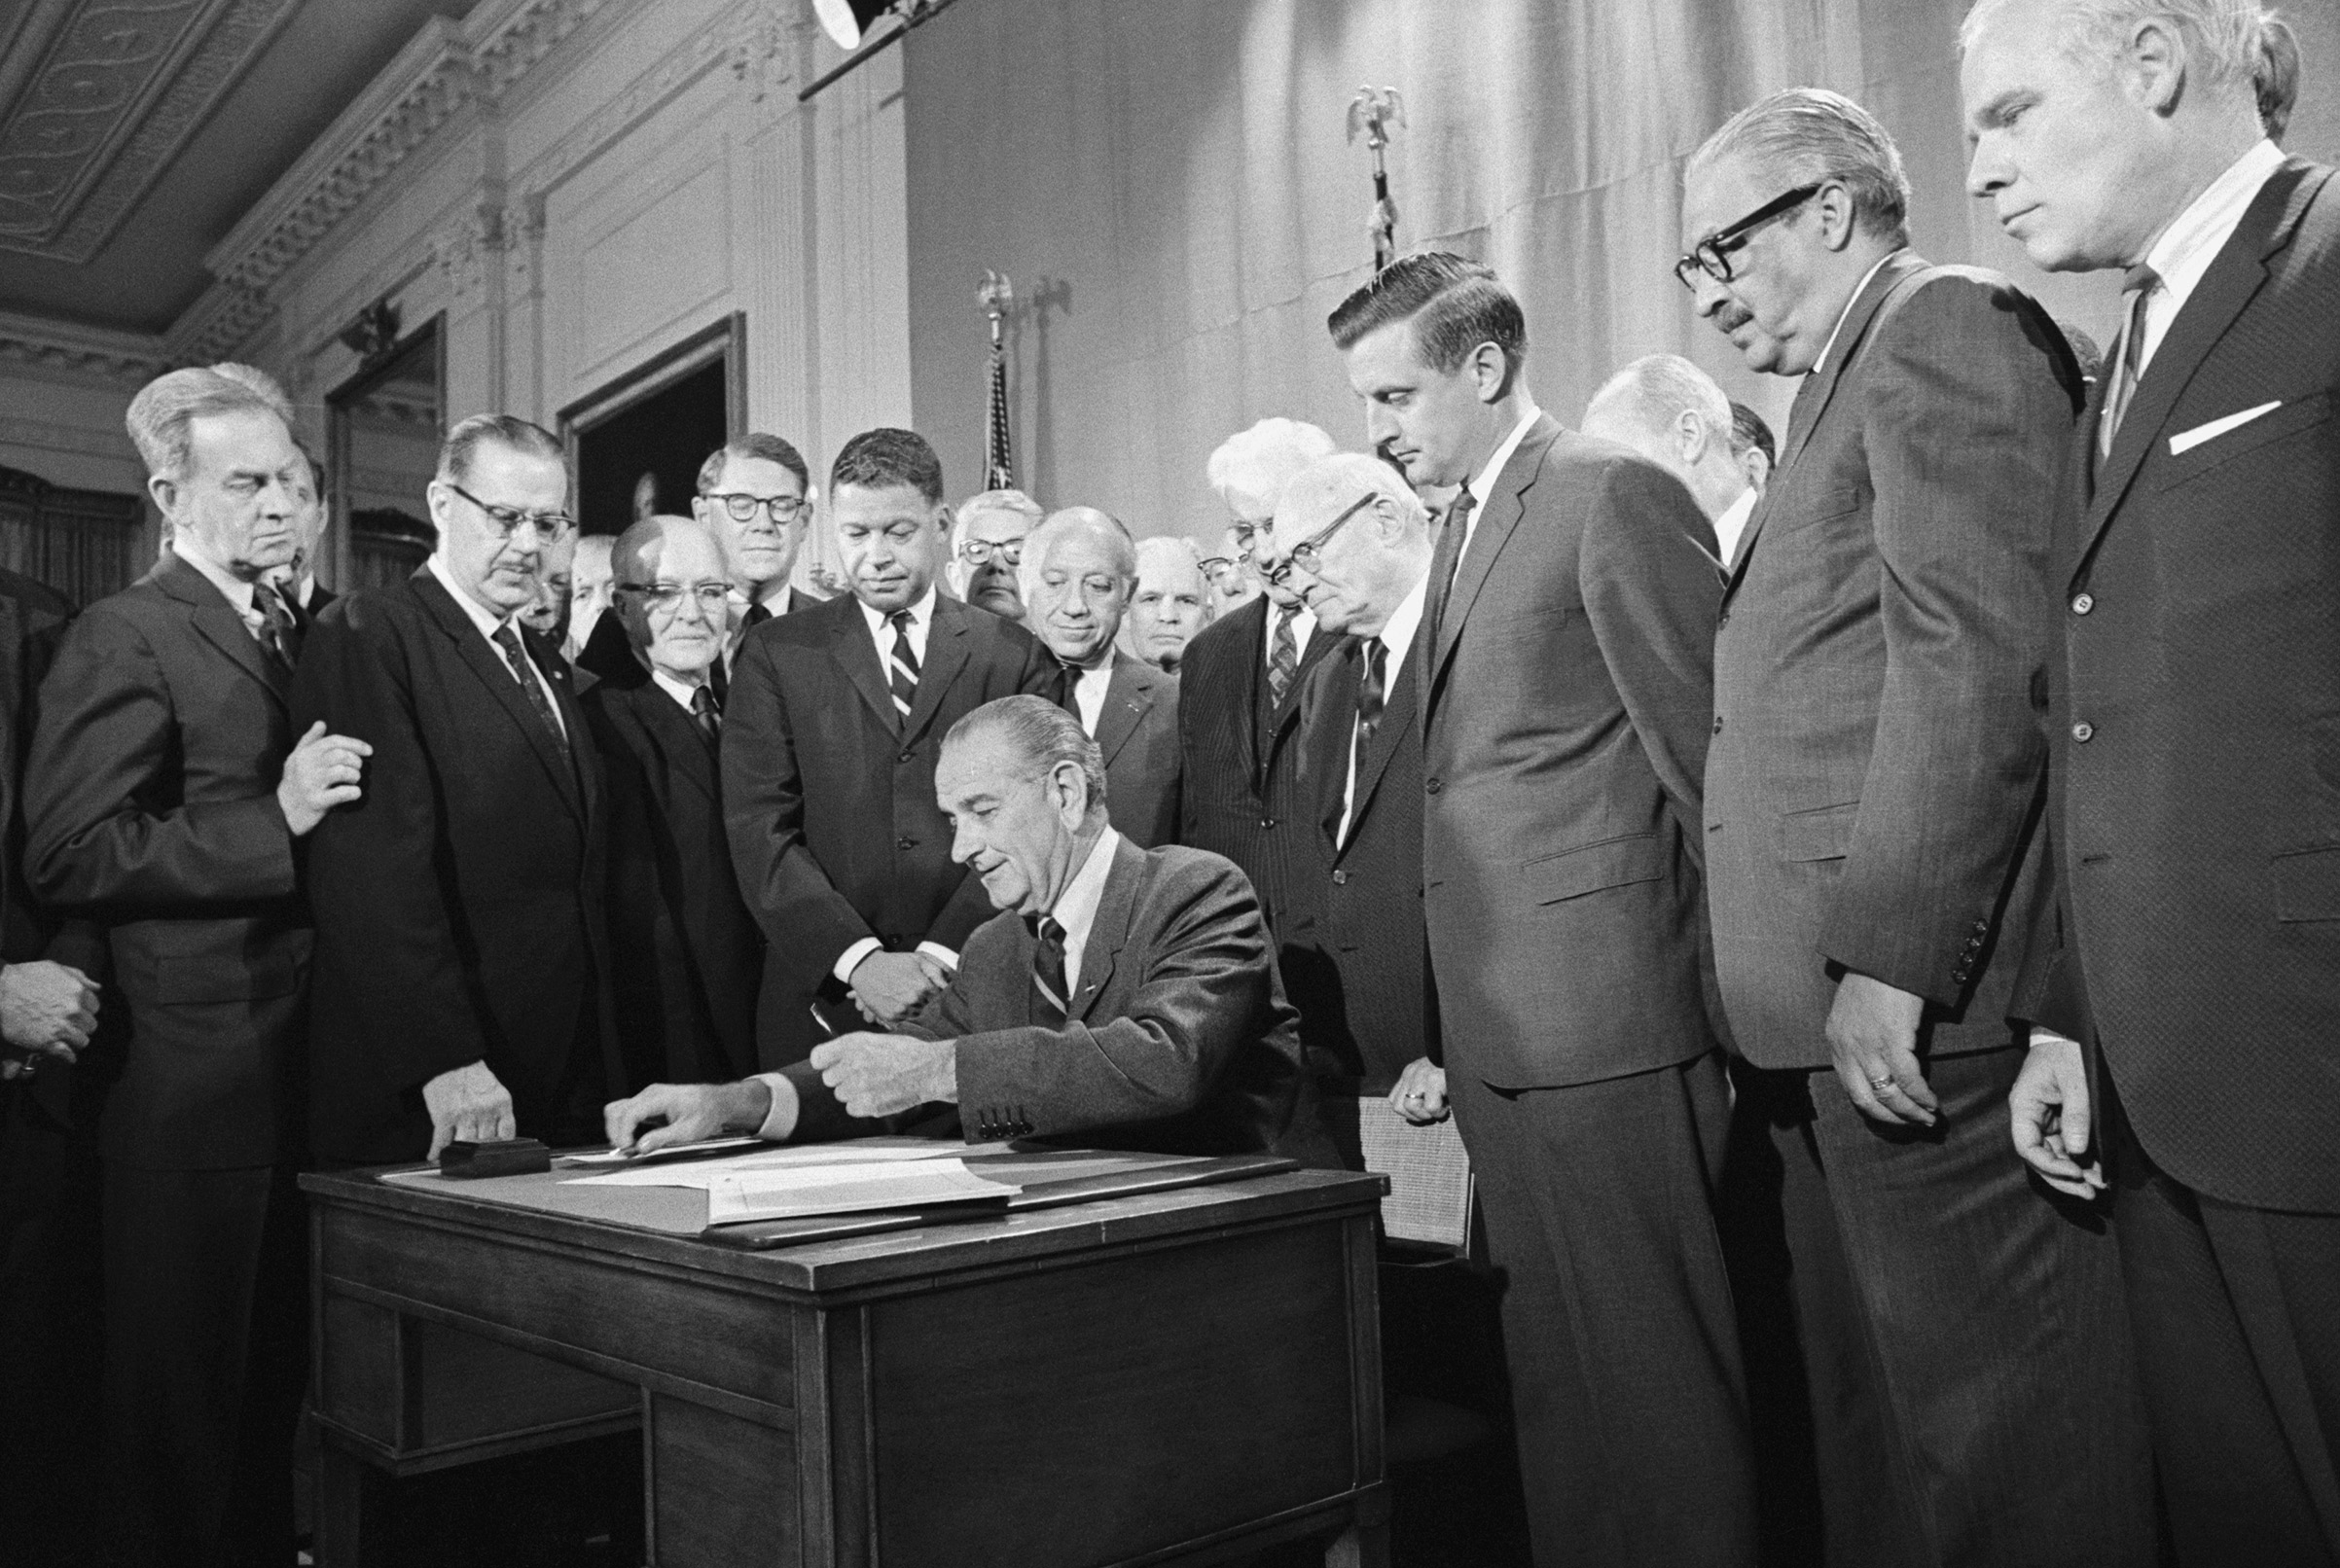 The Fair Housing Act's co-sponsors,  Democratic Senator from Minnesota Walter Mondale (third from right) and Republican Senator from Massachusetts Edward Brooke (fourth from the left in the striped tie), watch President Lyndon B. Johnson sign the civil rights bill into law on April 11, 1968.